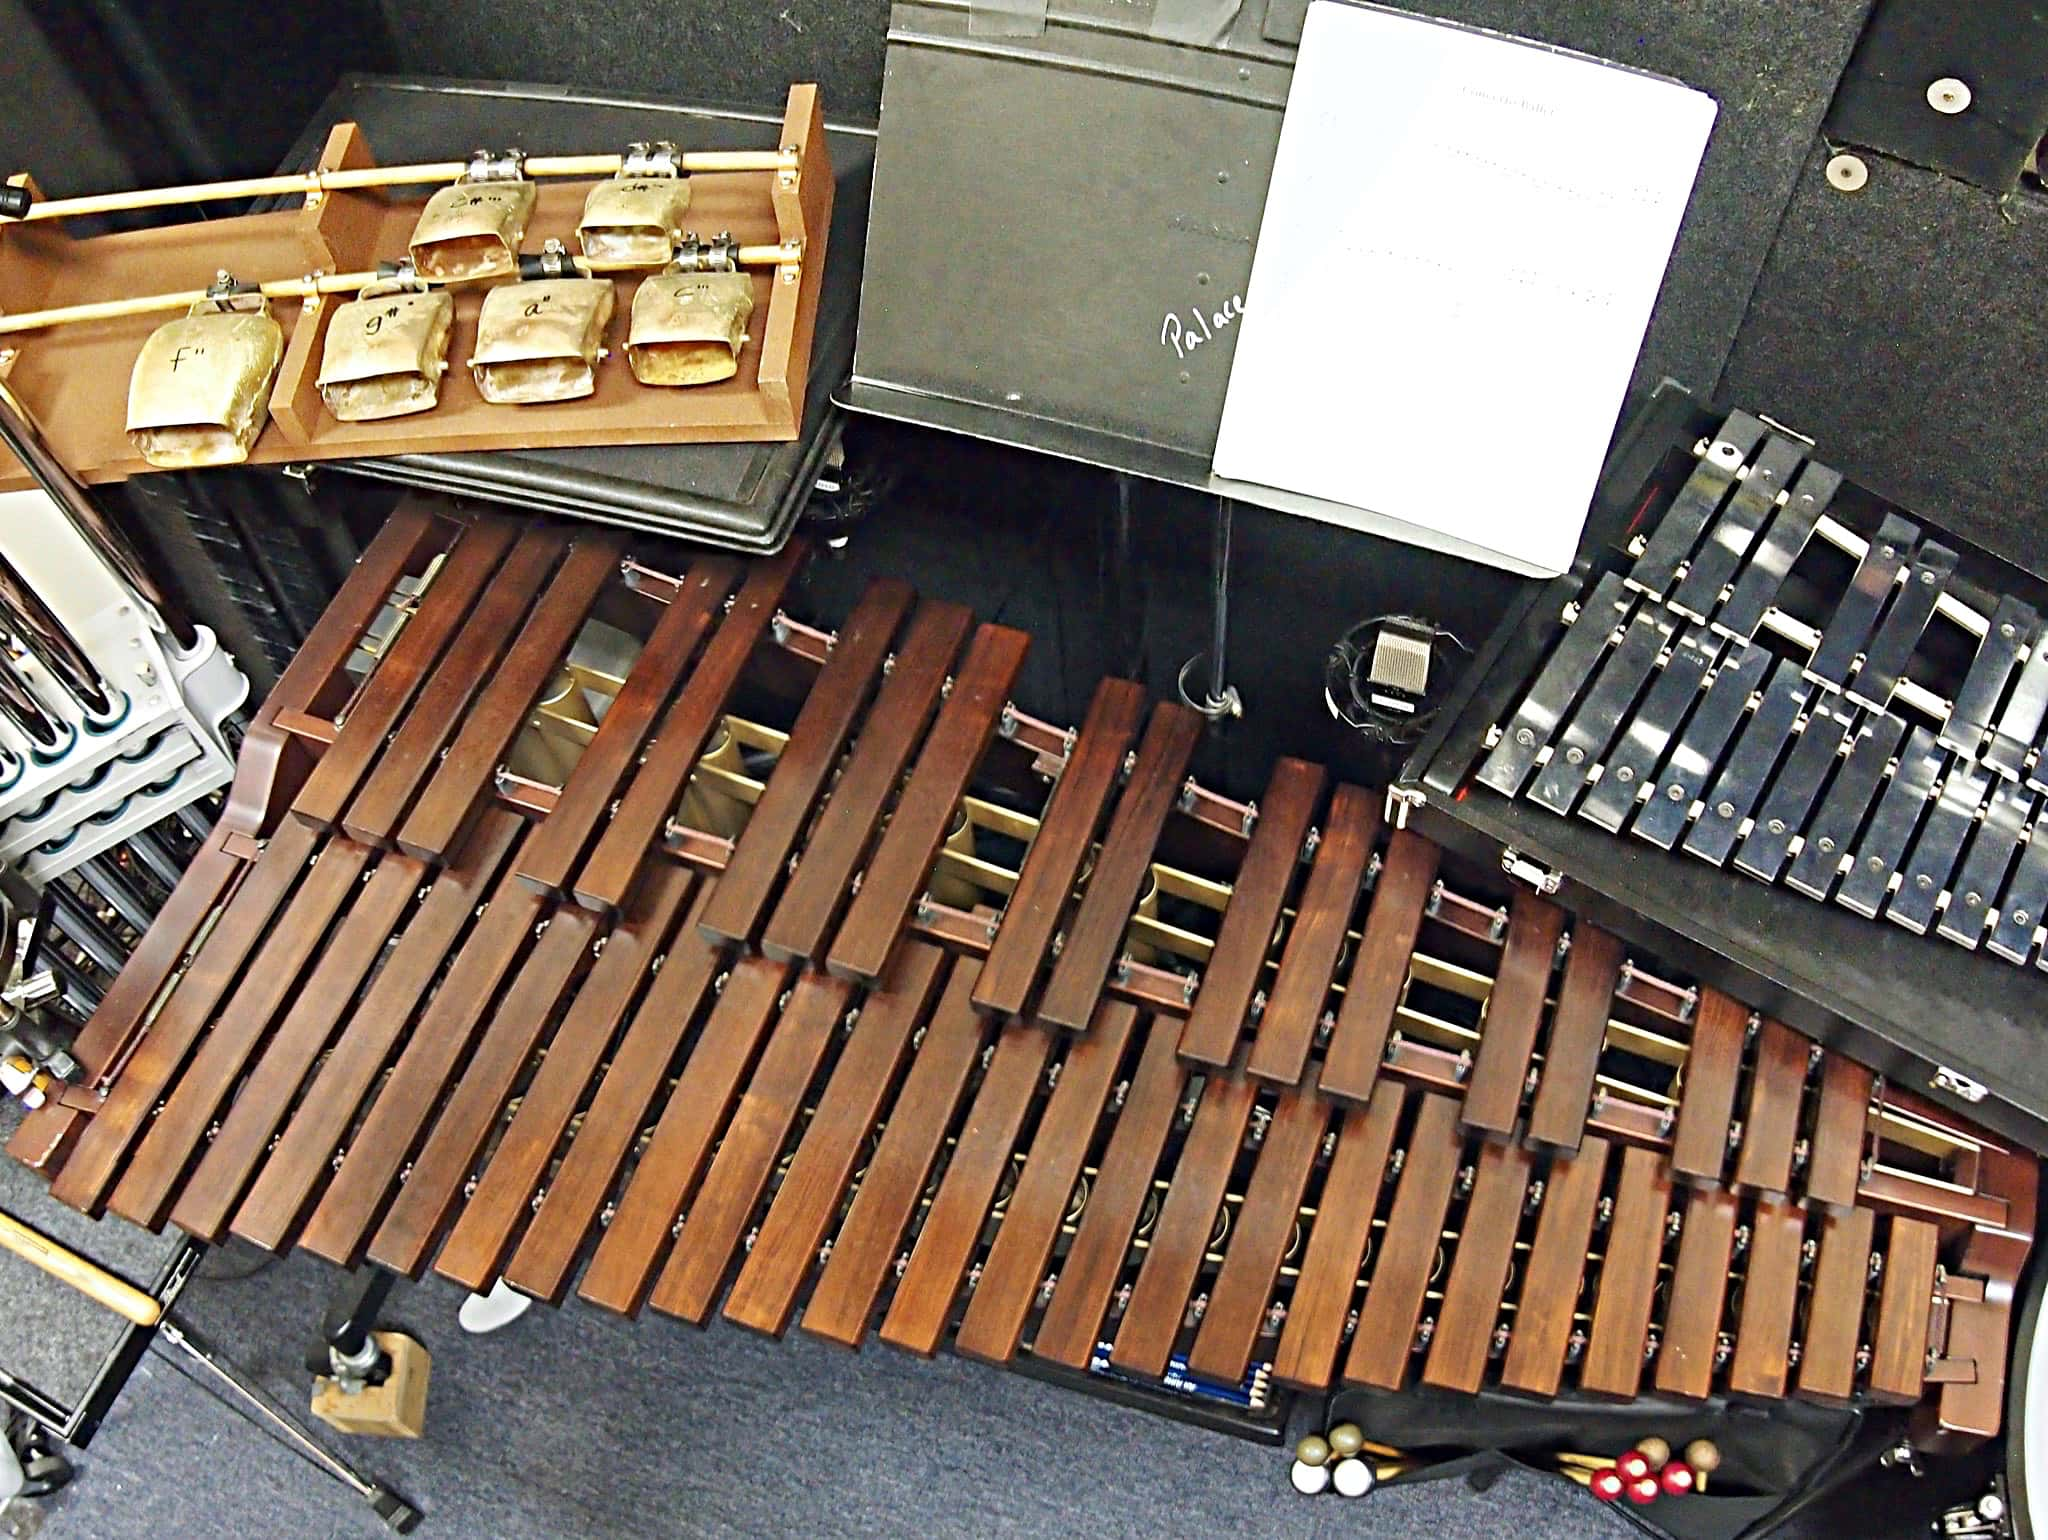 Andy Blanco's percussion setup for the Broadway production of An American in Paris at The Palace Theatre in New York City.